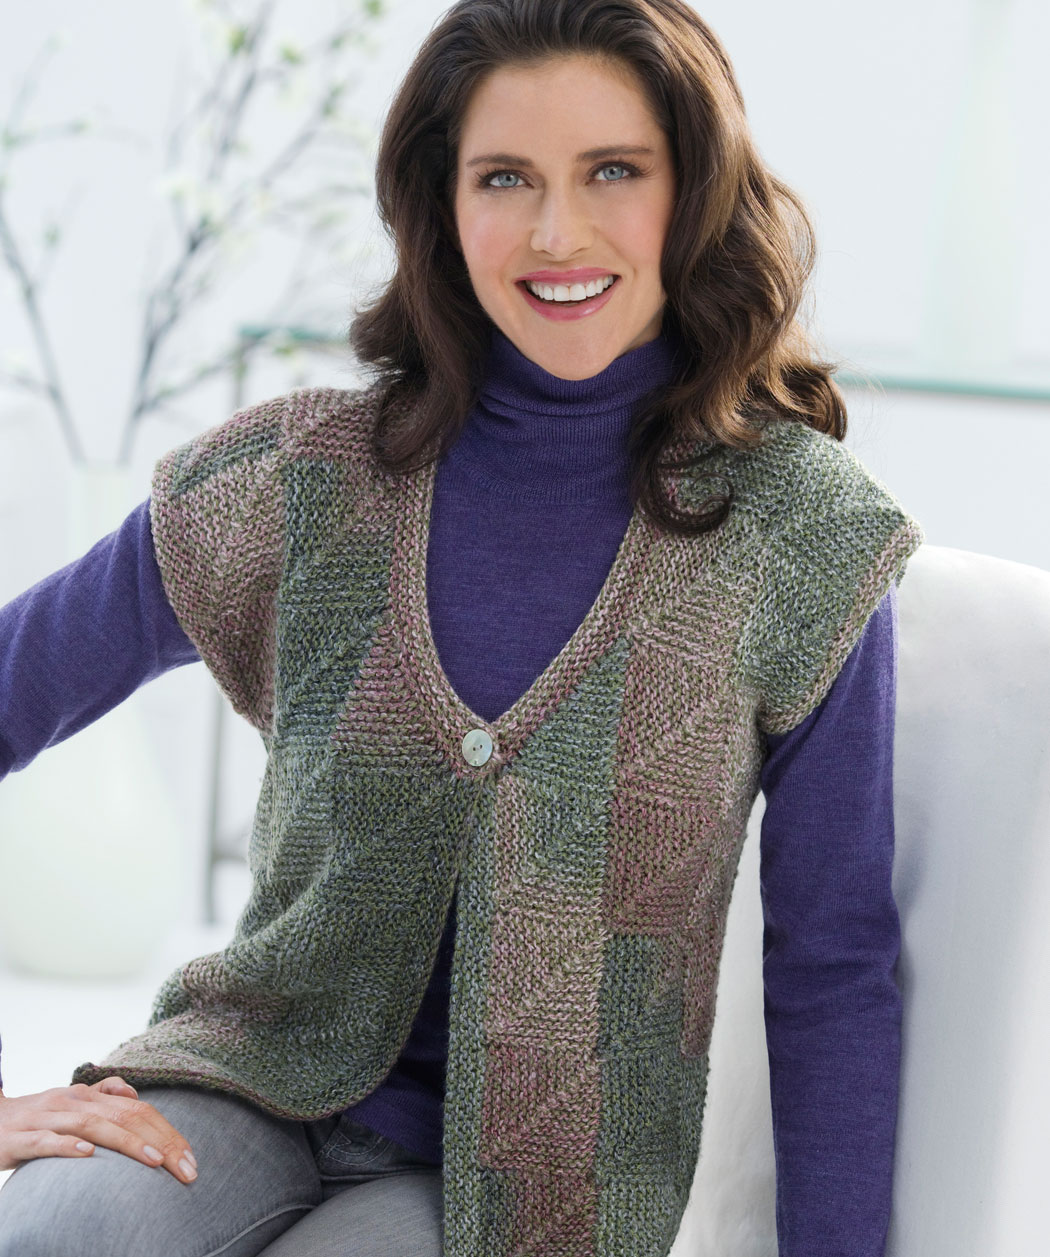 Free Knitting Patterns Ladies : Knitted Vest Patterns A Knitting Blog